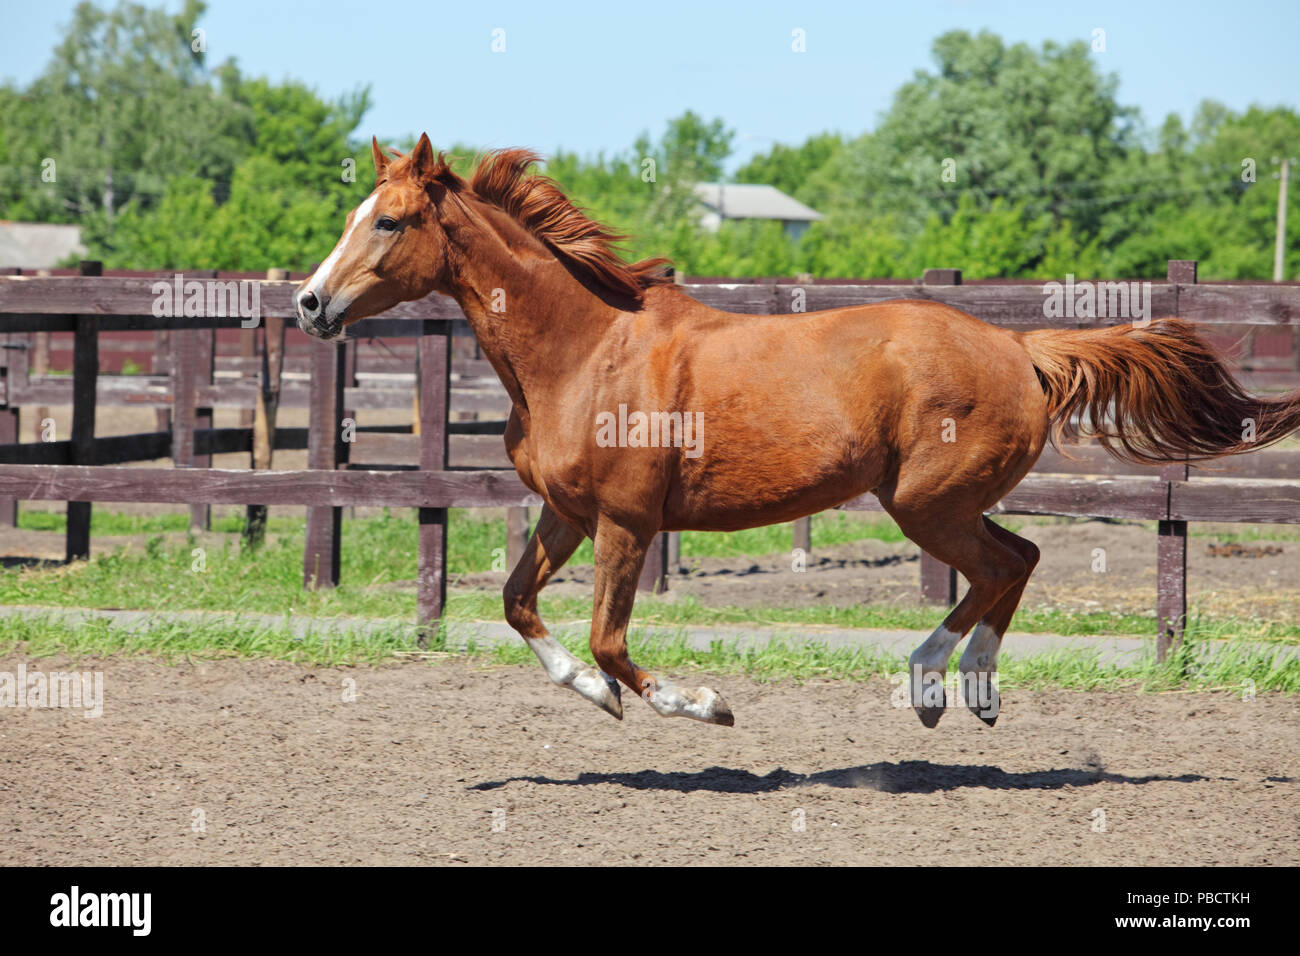 Chestnut race horse running in paddock on the sand background - Stock Image